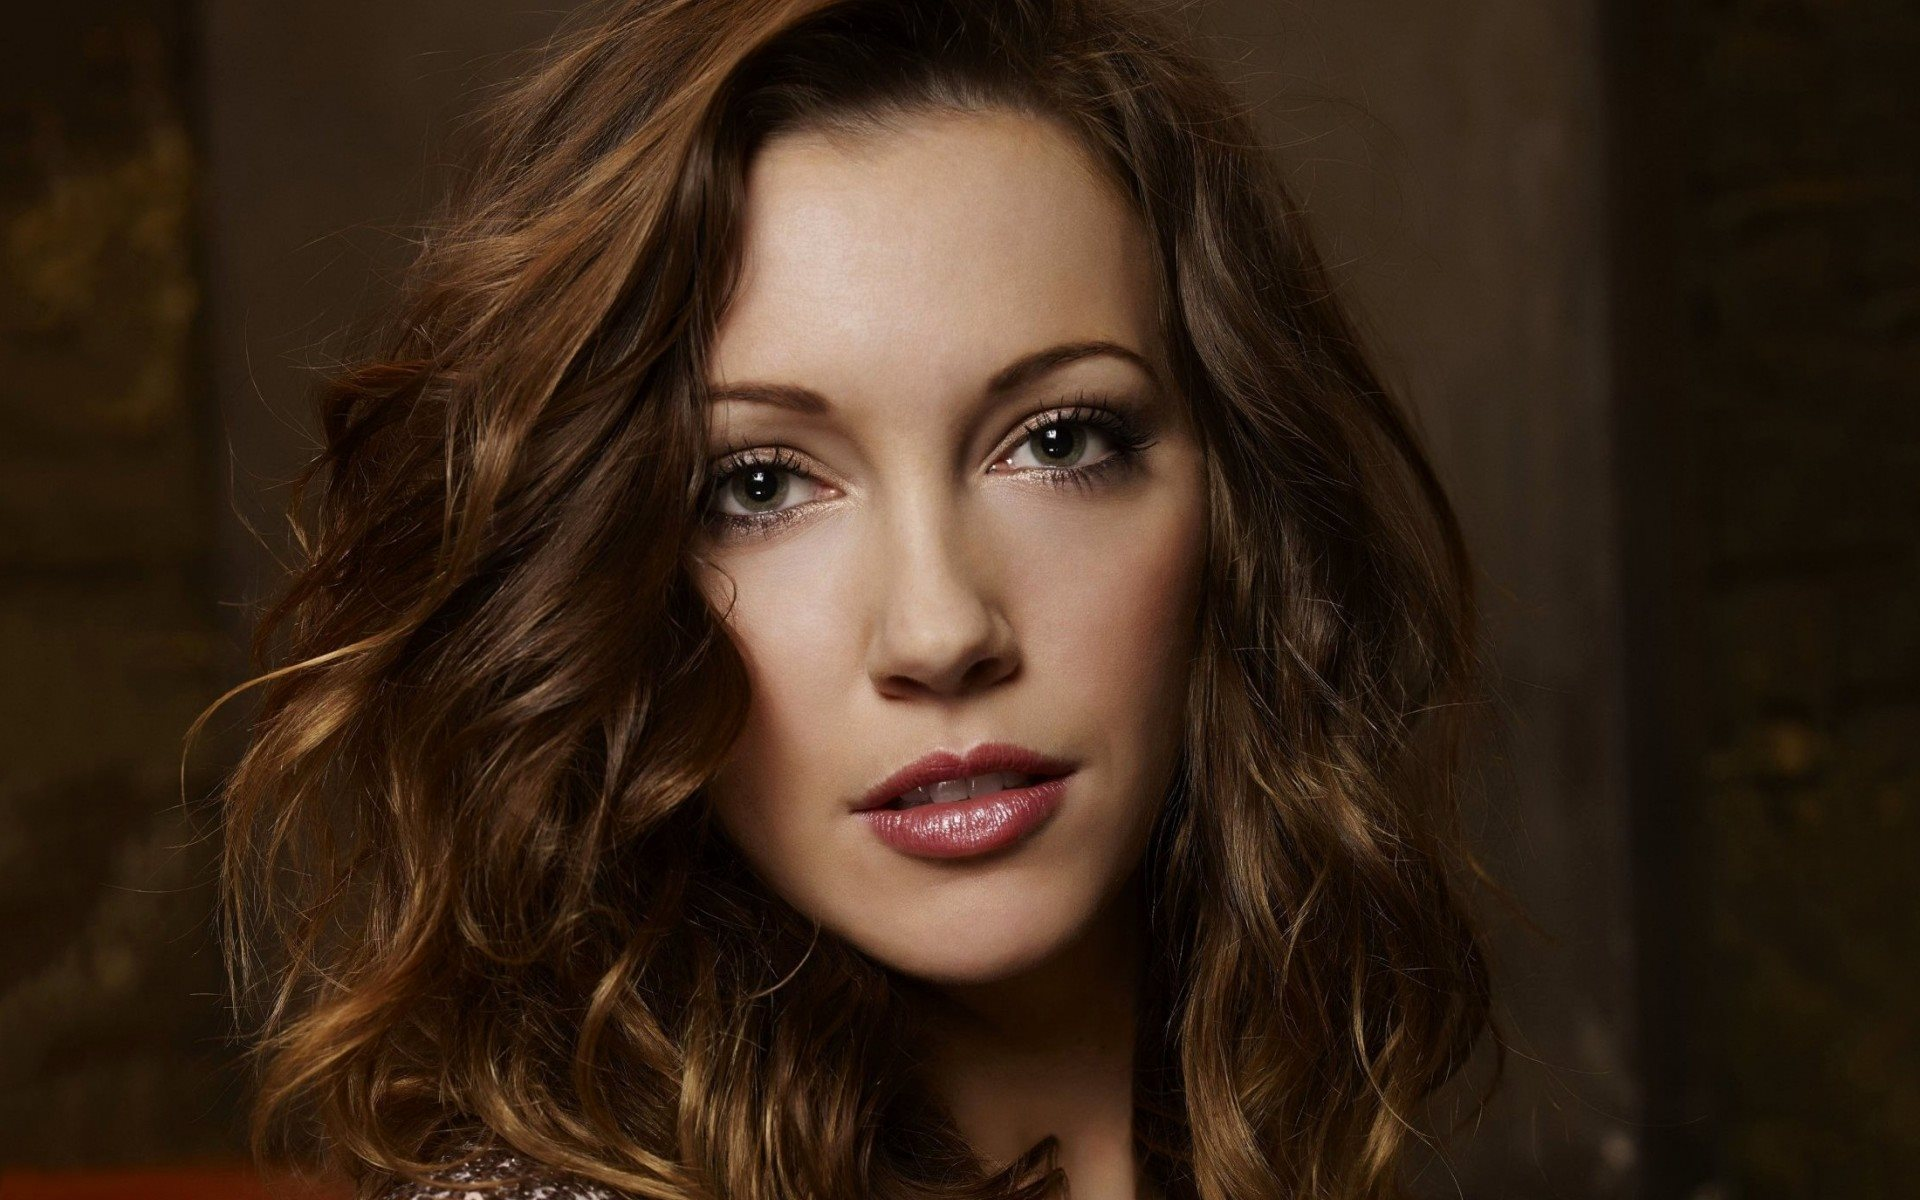 Katie Cassidy Background Wallpapers | WallpapersIn4k.net